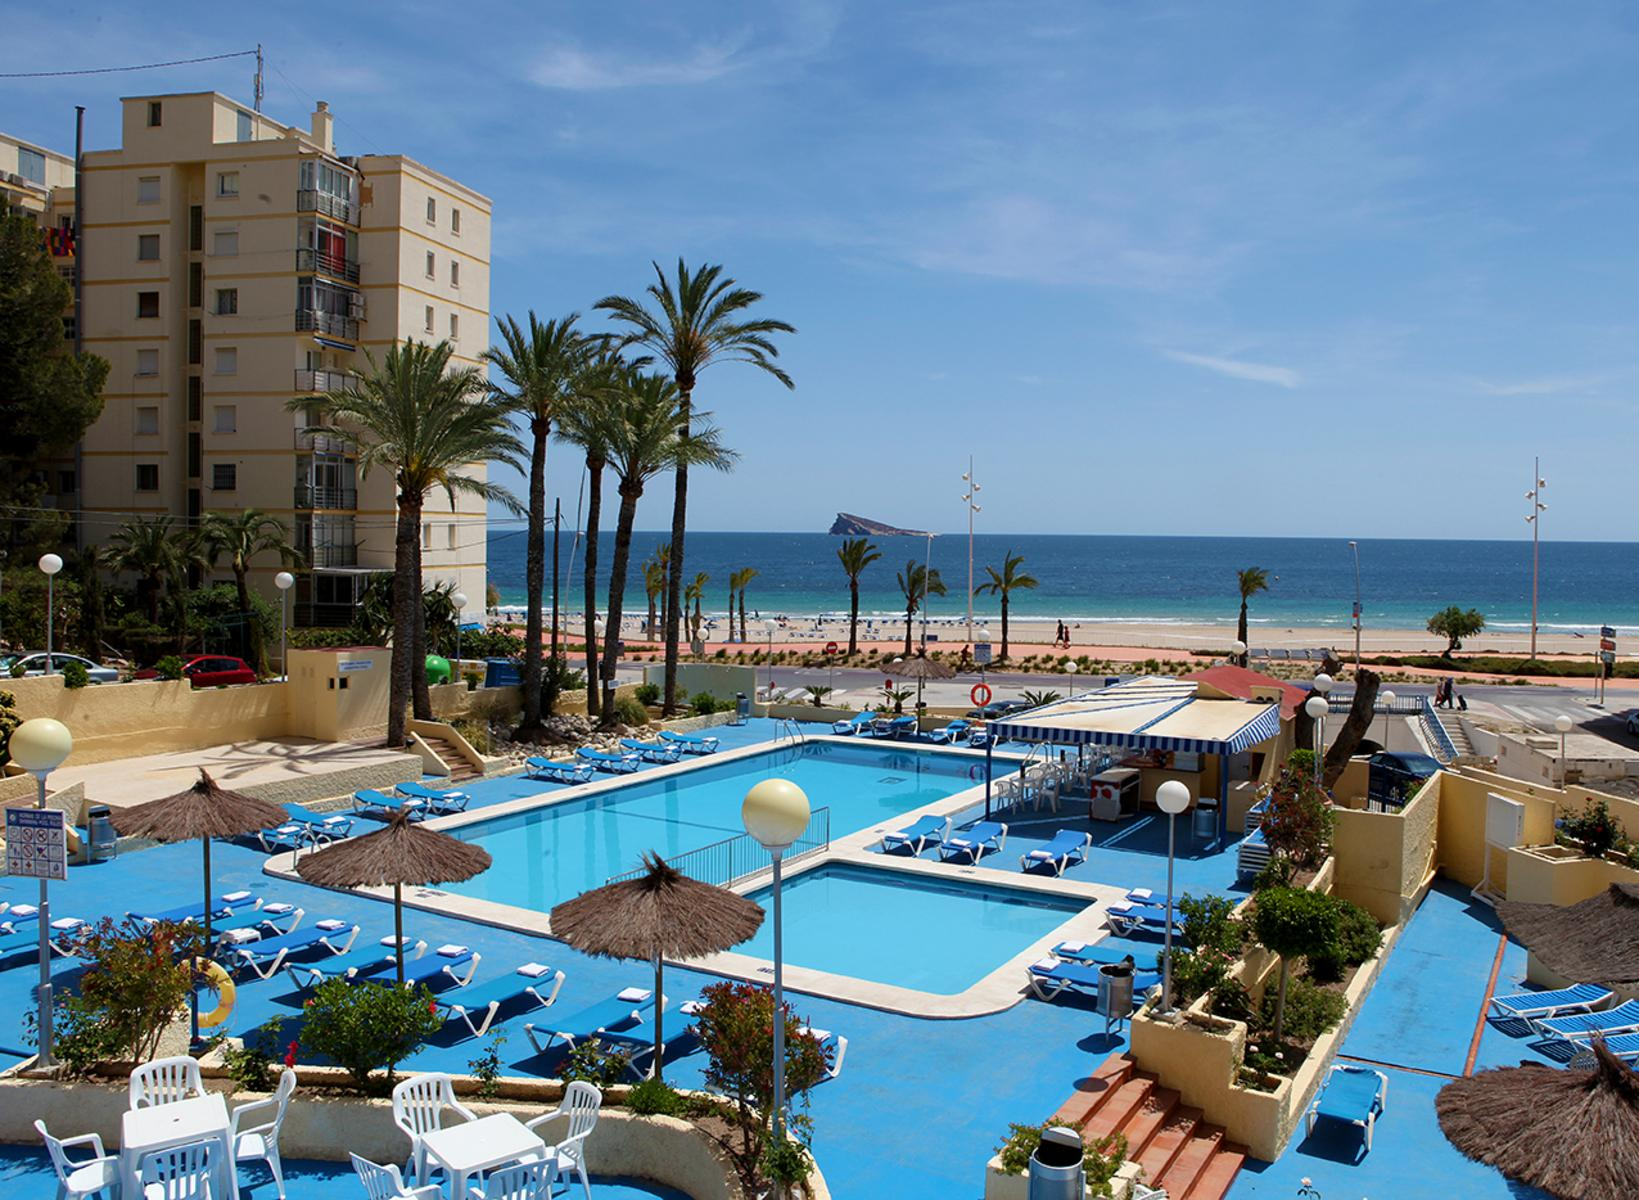 Poseidon playa hotel in benidorm spain holidays from for Hotel poseidon benidorm